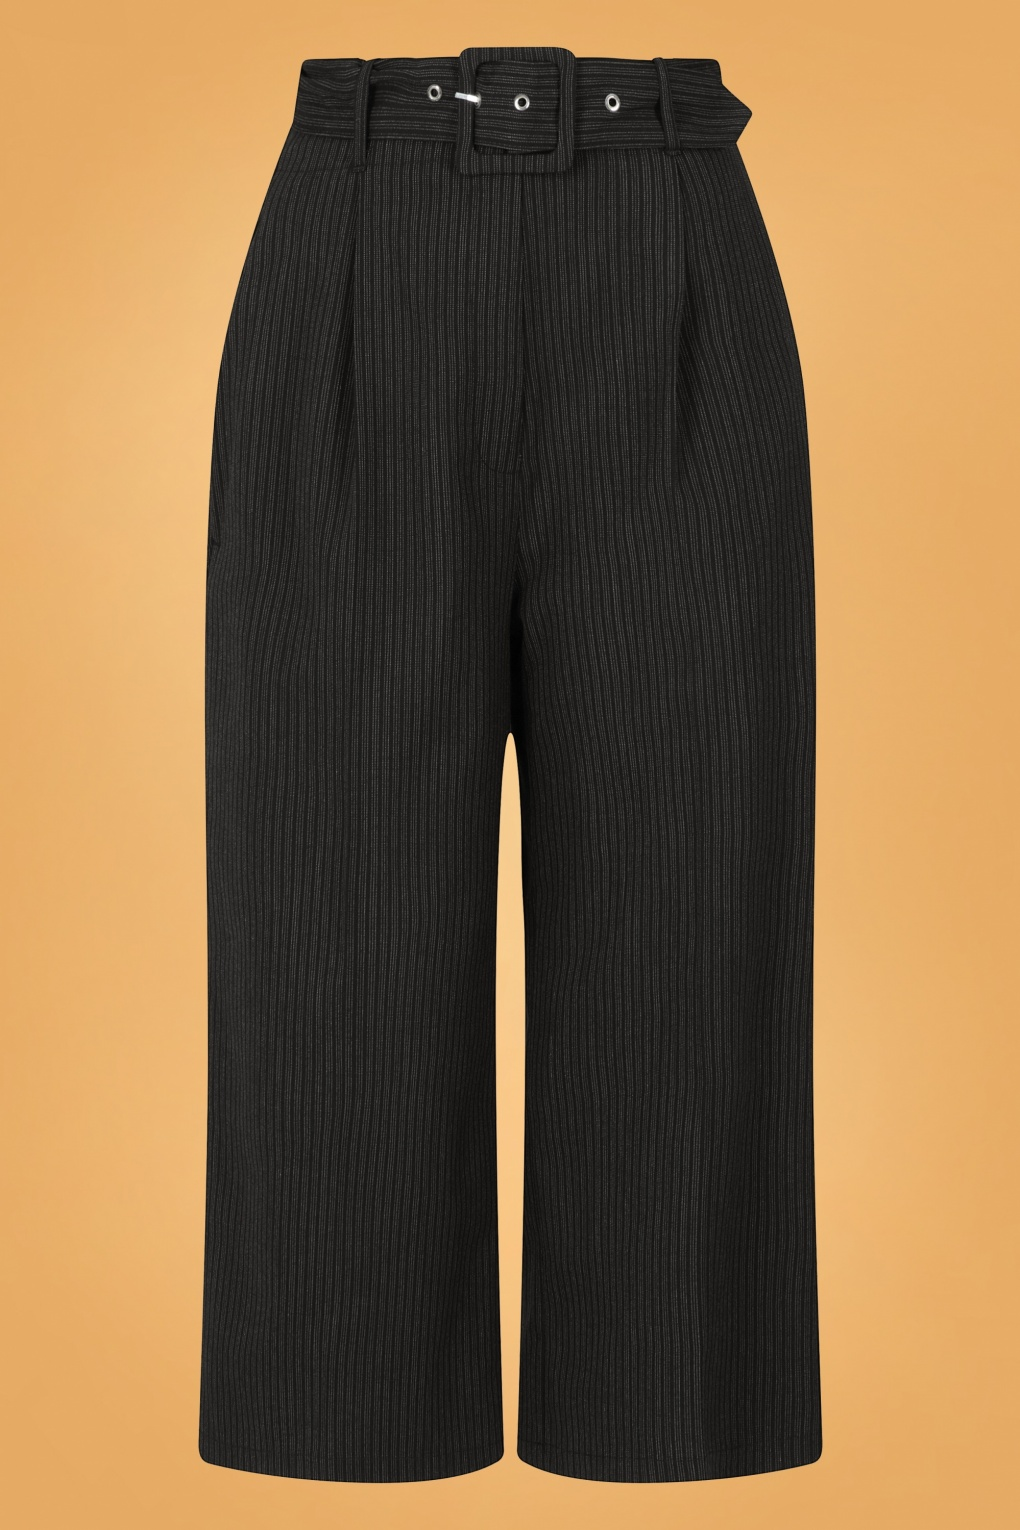 Vintage Wide Leg Pants & Beach Pajamas History 30s Benny Pinstripe Culottes in Black and Grey £37.84 AT vintagedancer.com